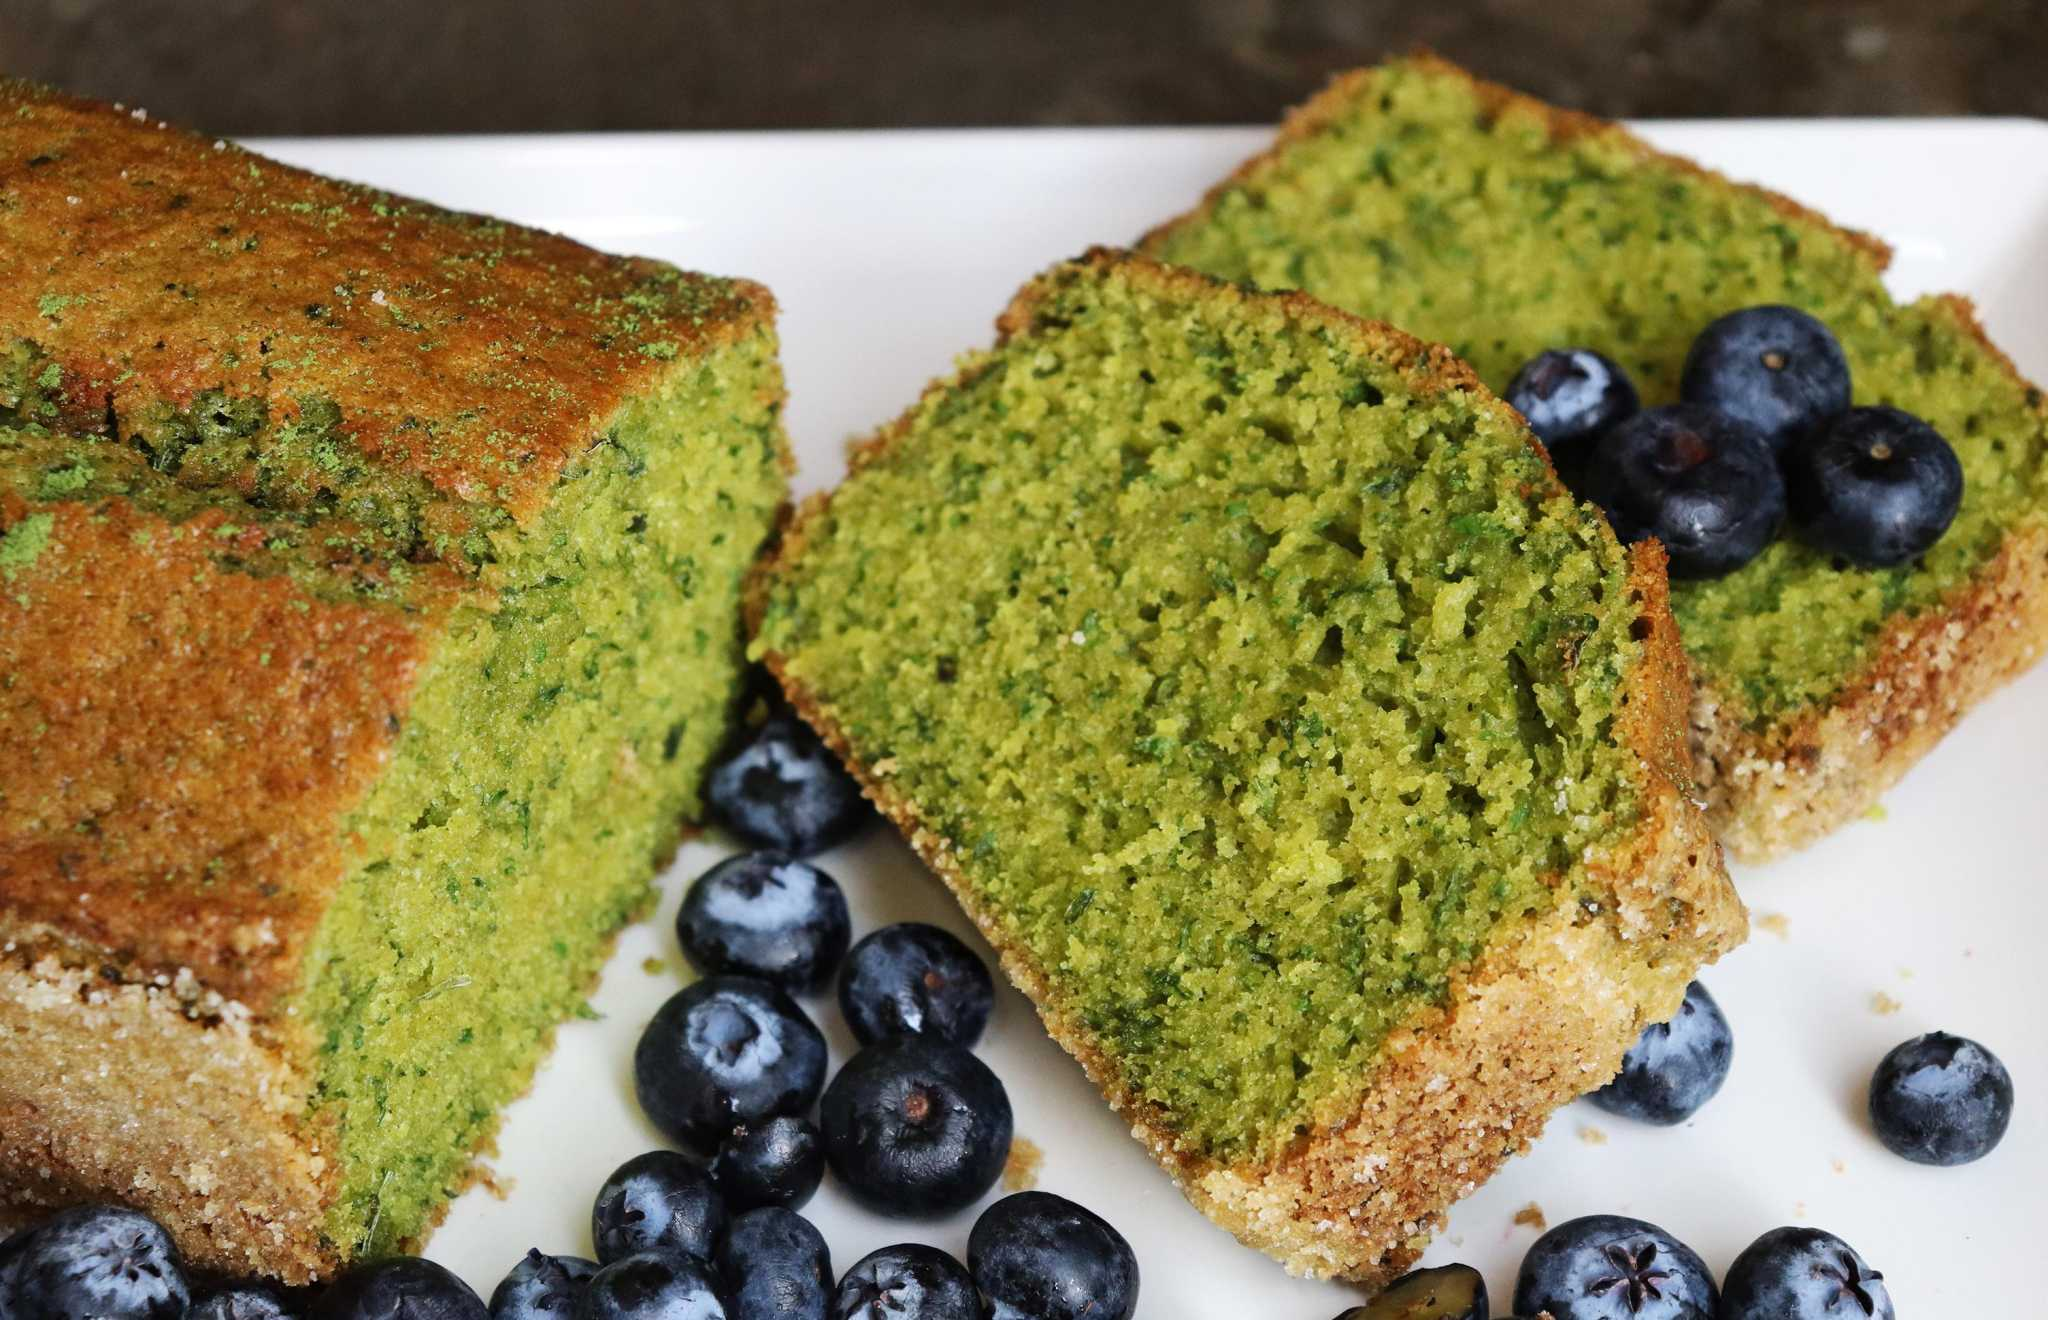 How to make a parsley cake that's both gorgeous and delicious